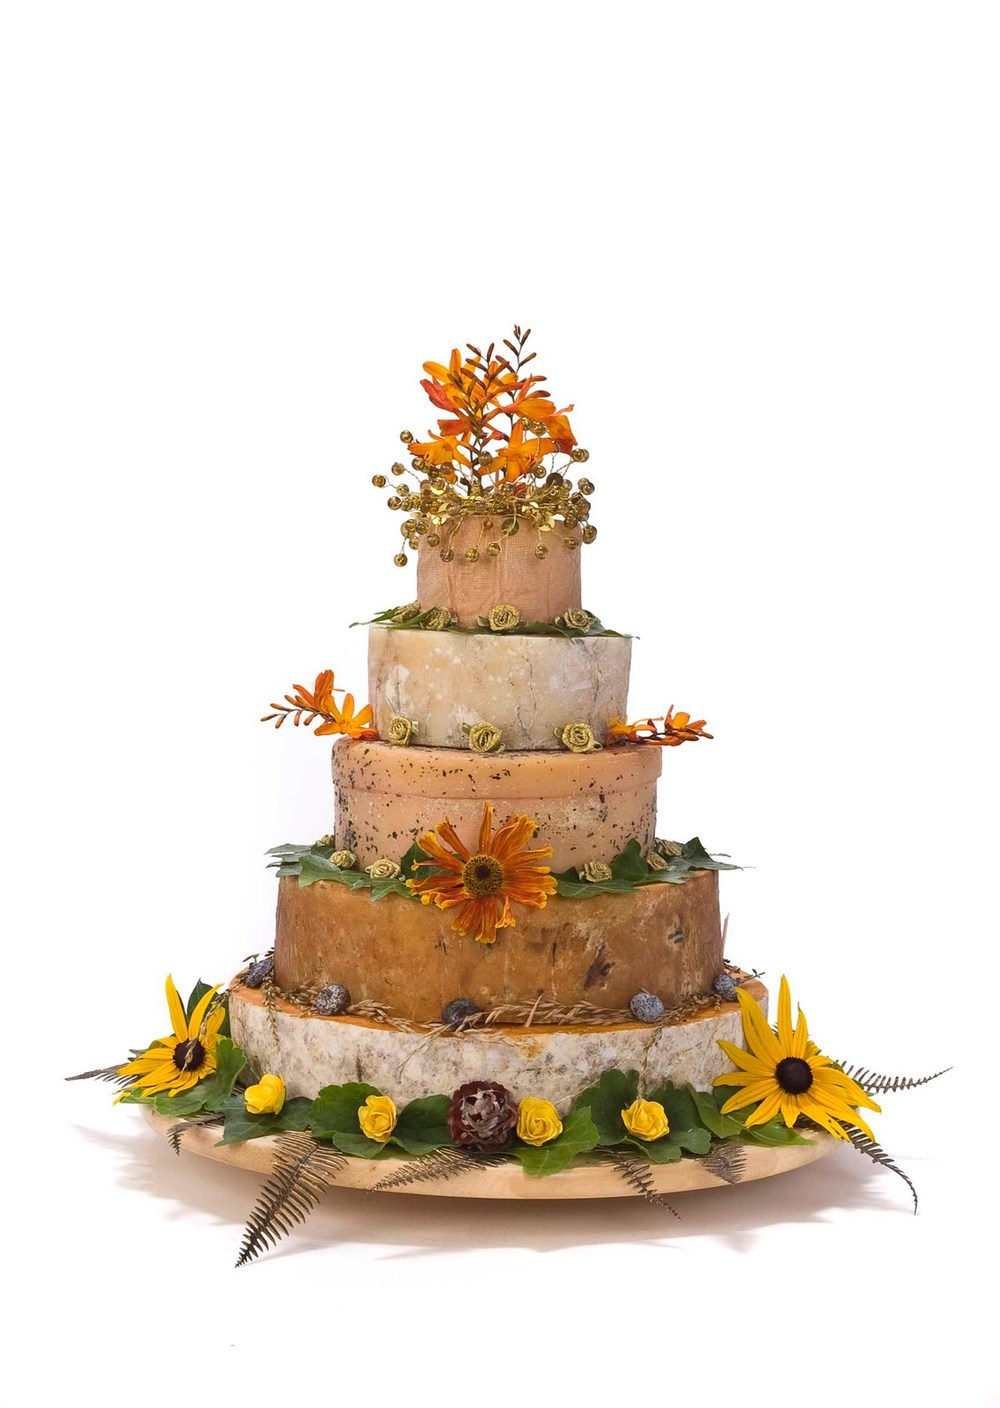 Cheese wedding cakes HelloLucky